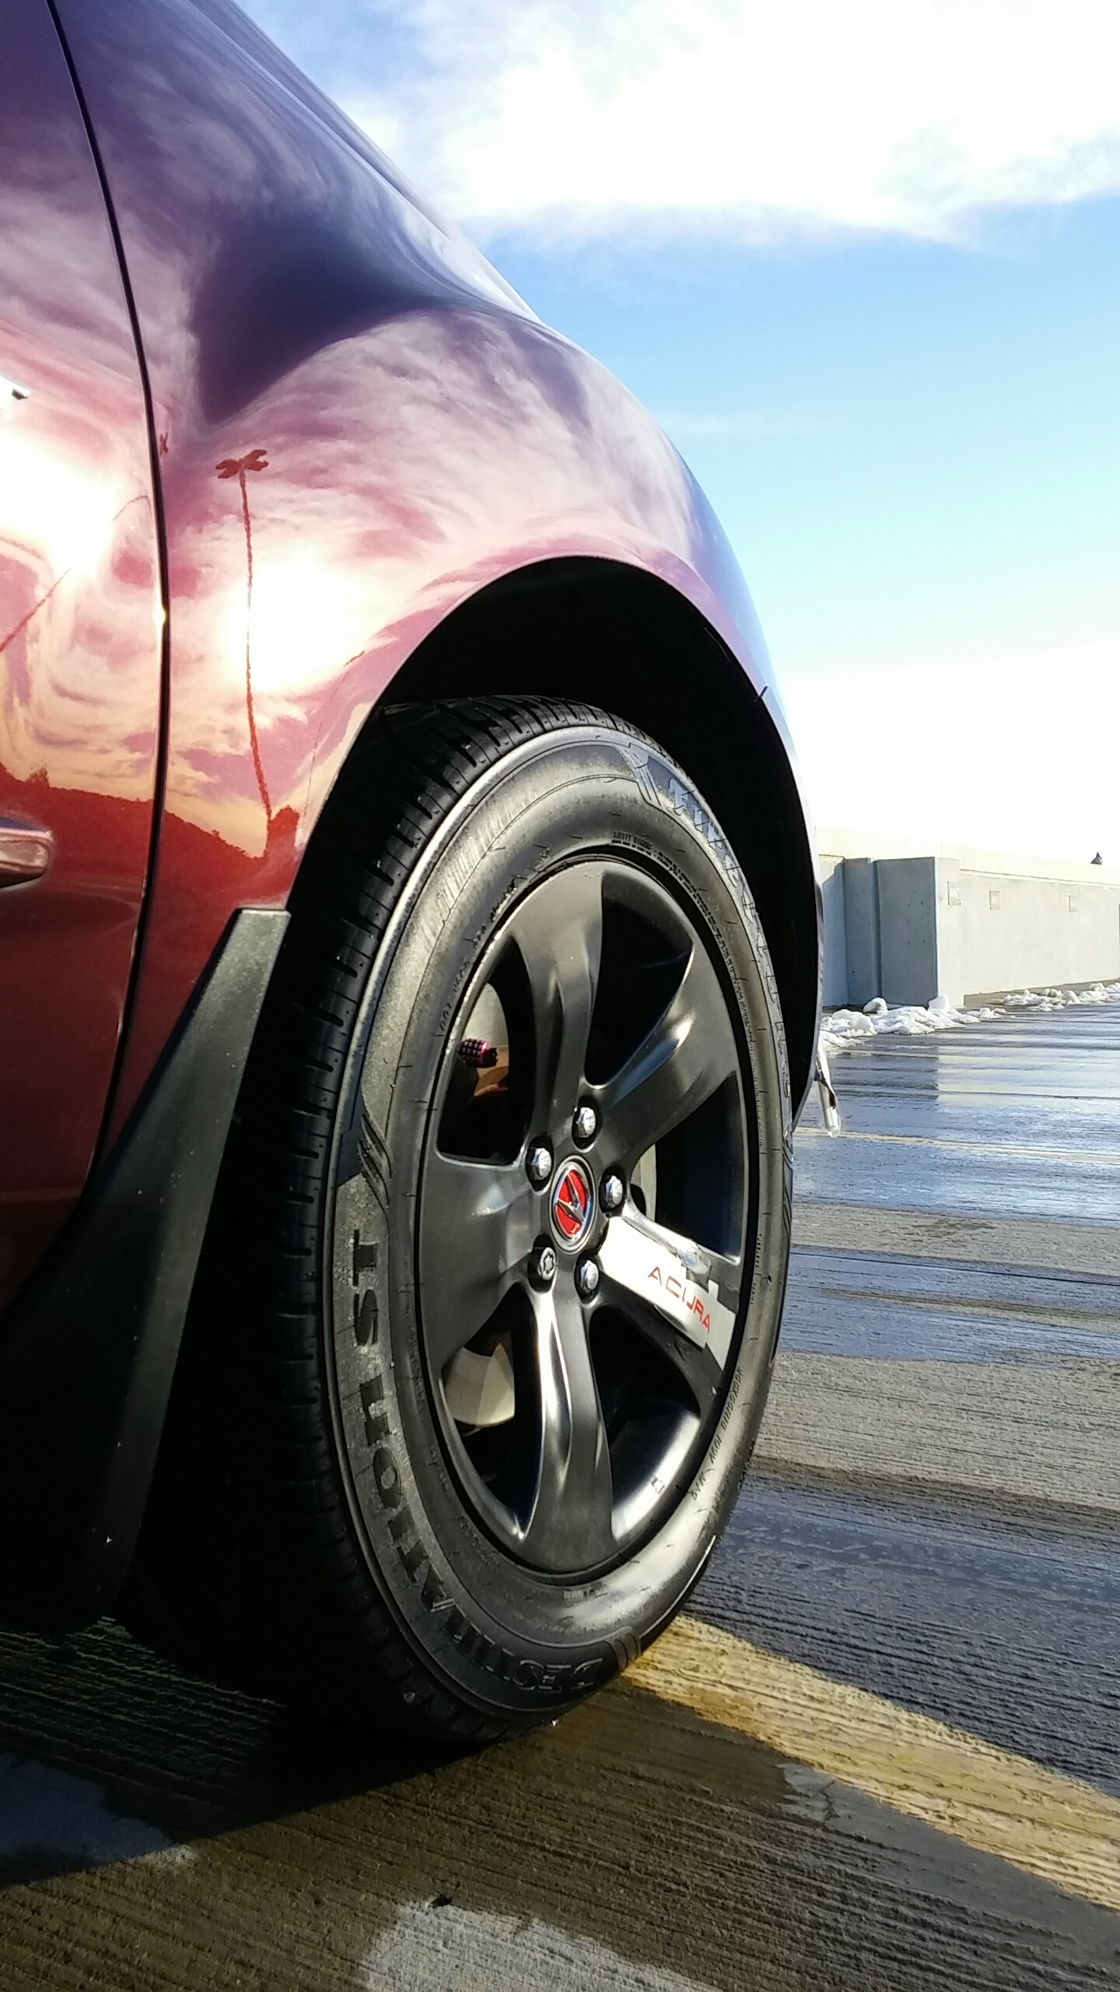 This is what i did i plastidipped the stock rims on the sport model 08 dark cherry pearl mdx here btw follow me on instagram oukshay i post pics of my